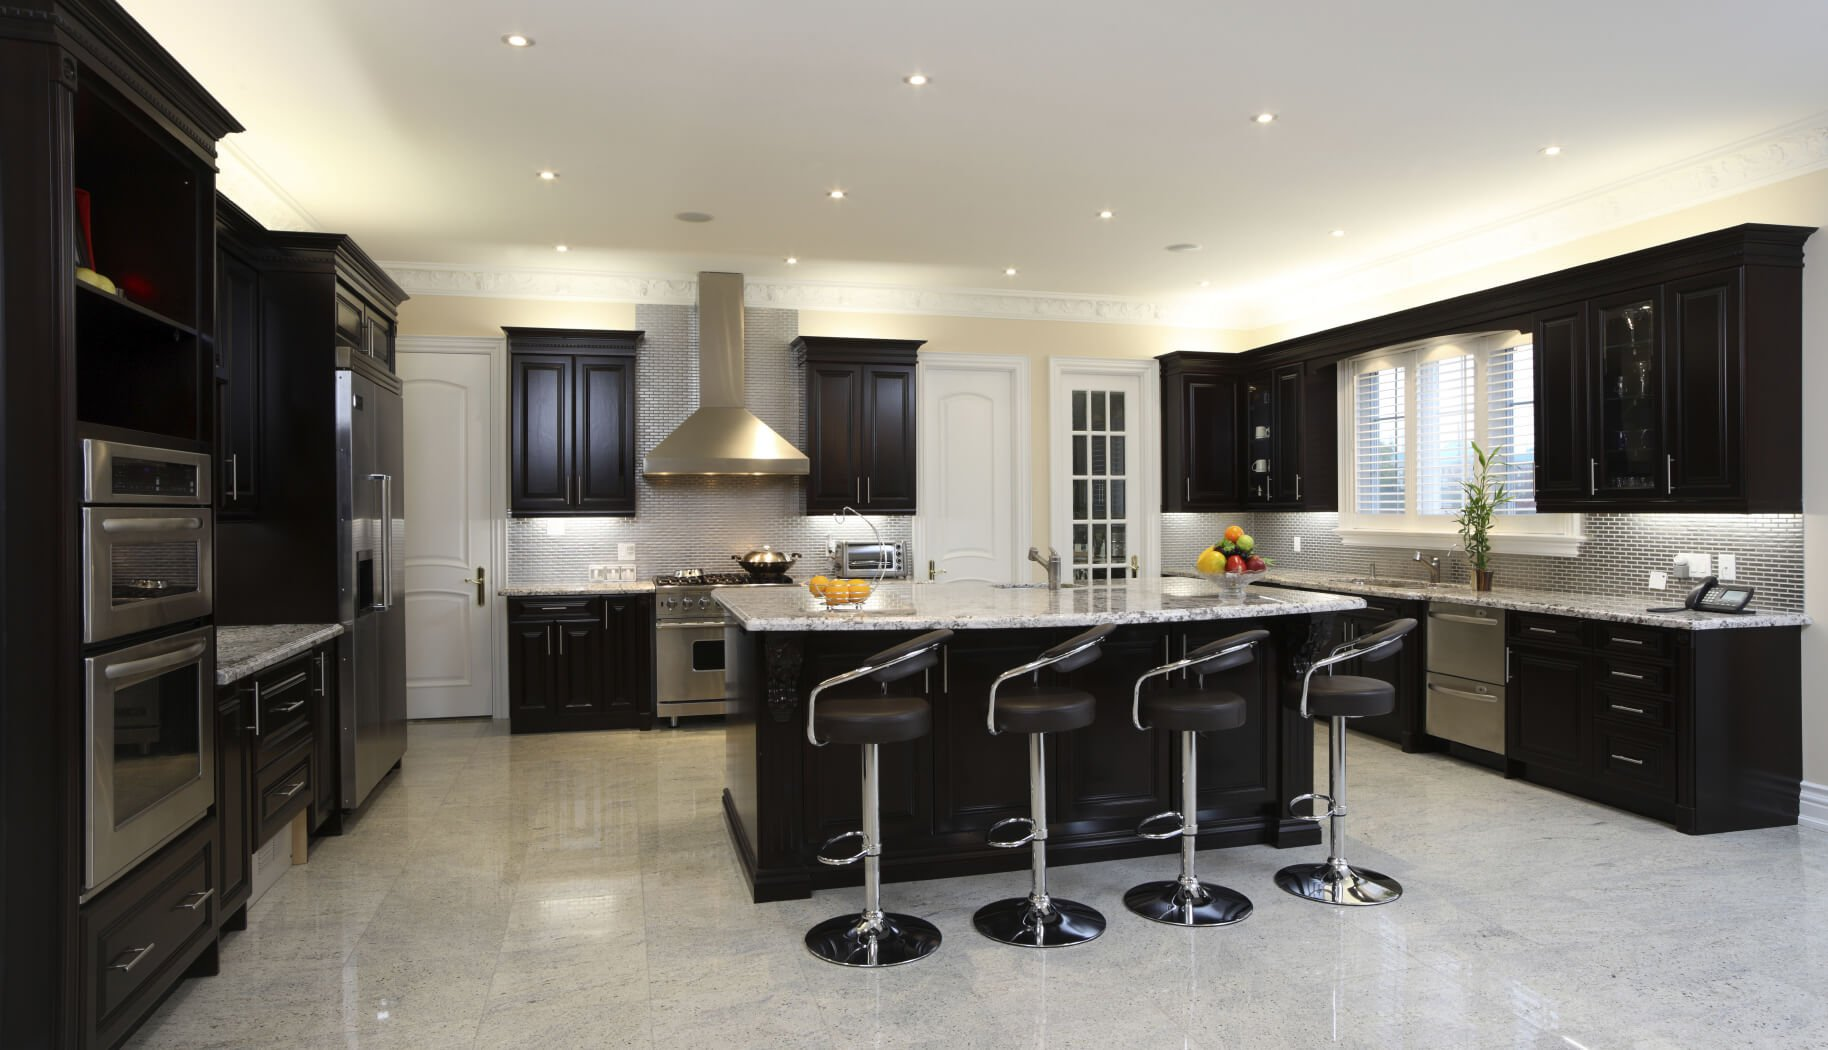 Spacious modern kitchen with dark cabinetry, breakfast bar, 4 modern diner style stools and stainless steel appliances. This is a great kitchen layout because the work aisles are wide which accommodate multiple people in the kitchen at the same time.